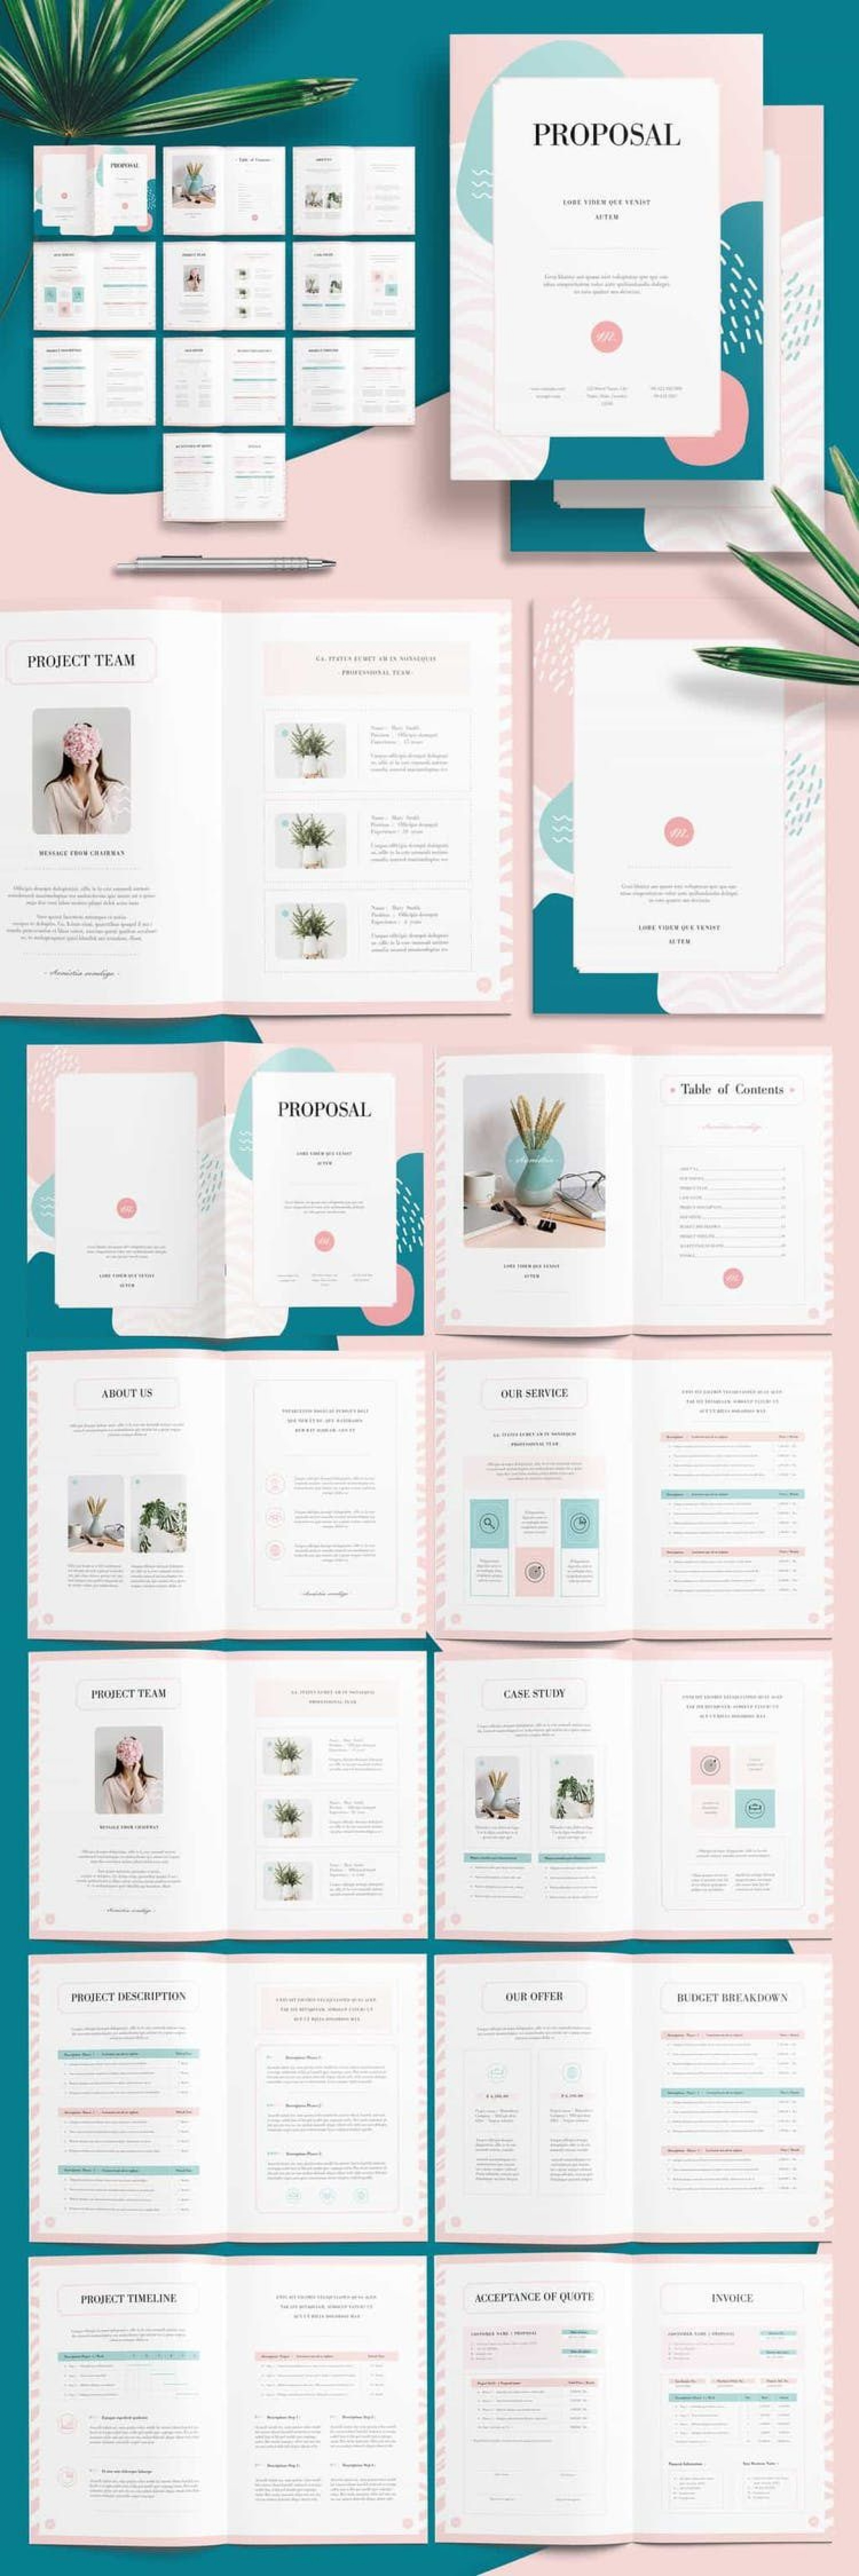 006 Wonderful Annual Report Design Template Example  Templates Word Timeles Free Download In1920